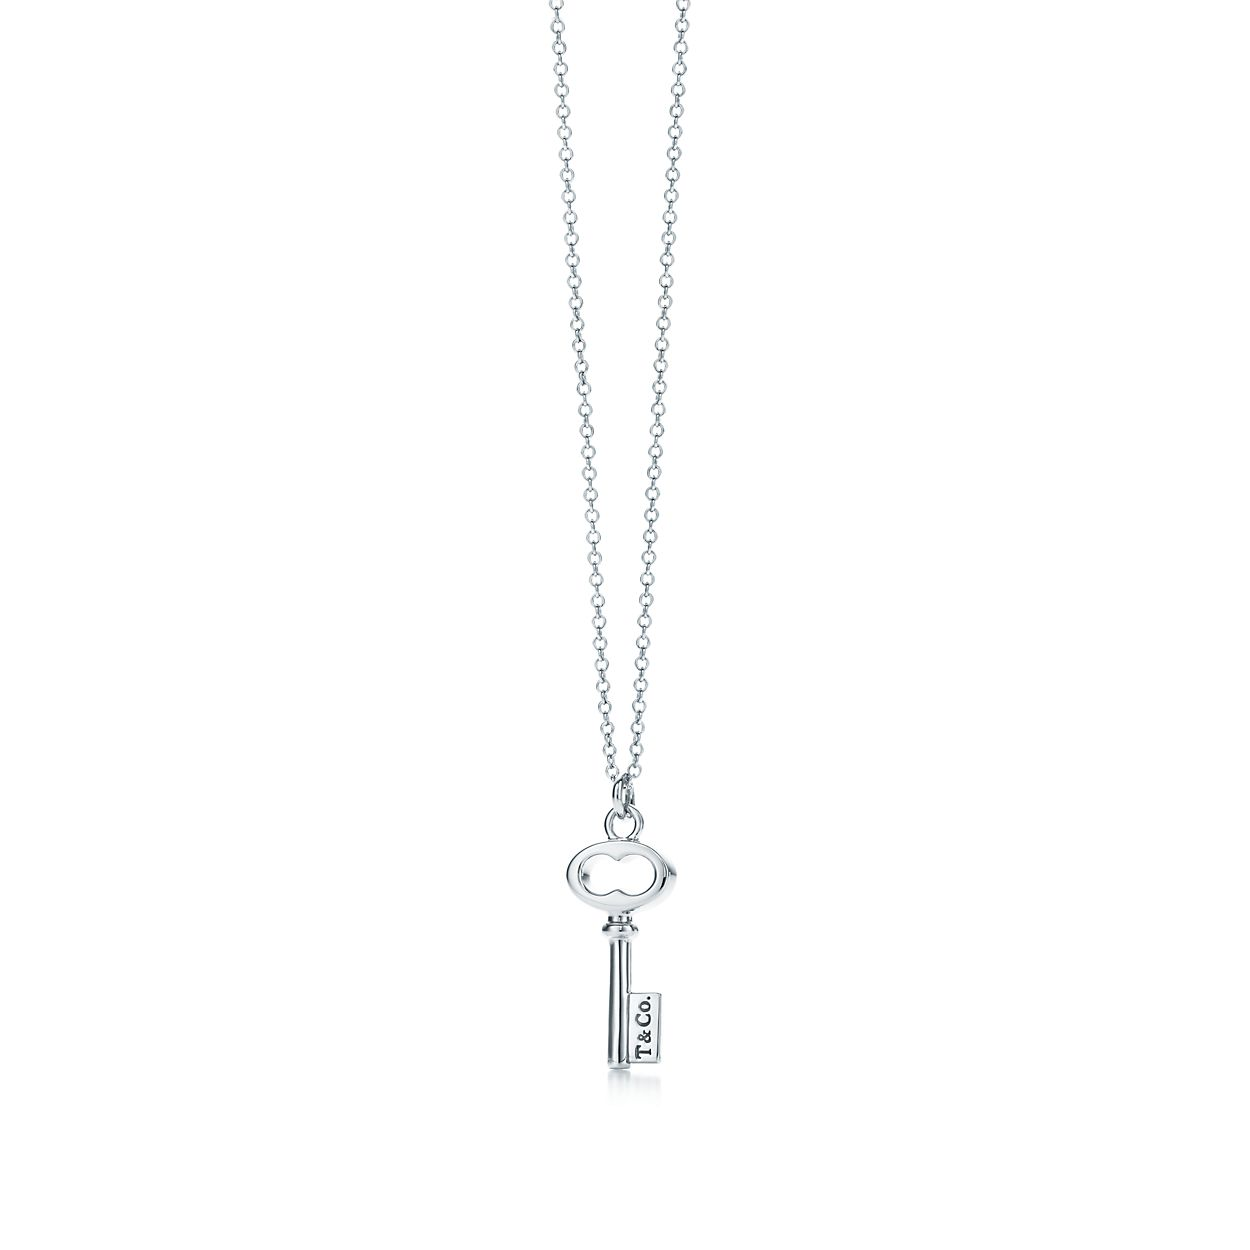 Tiffany keys tco key pendant in sterling silver mini key pendant tiffany keystco key pendant aloadofball Gallery